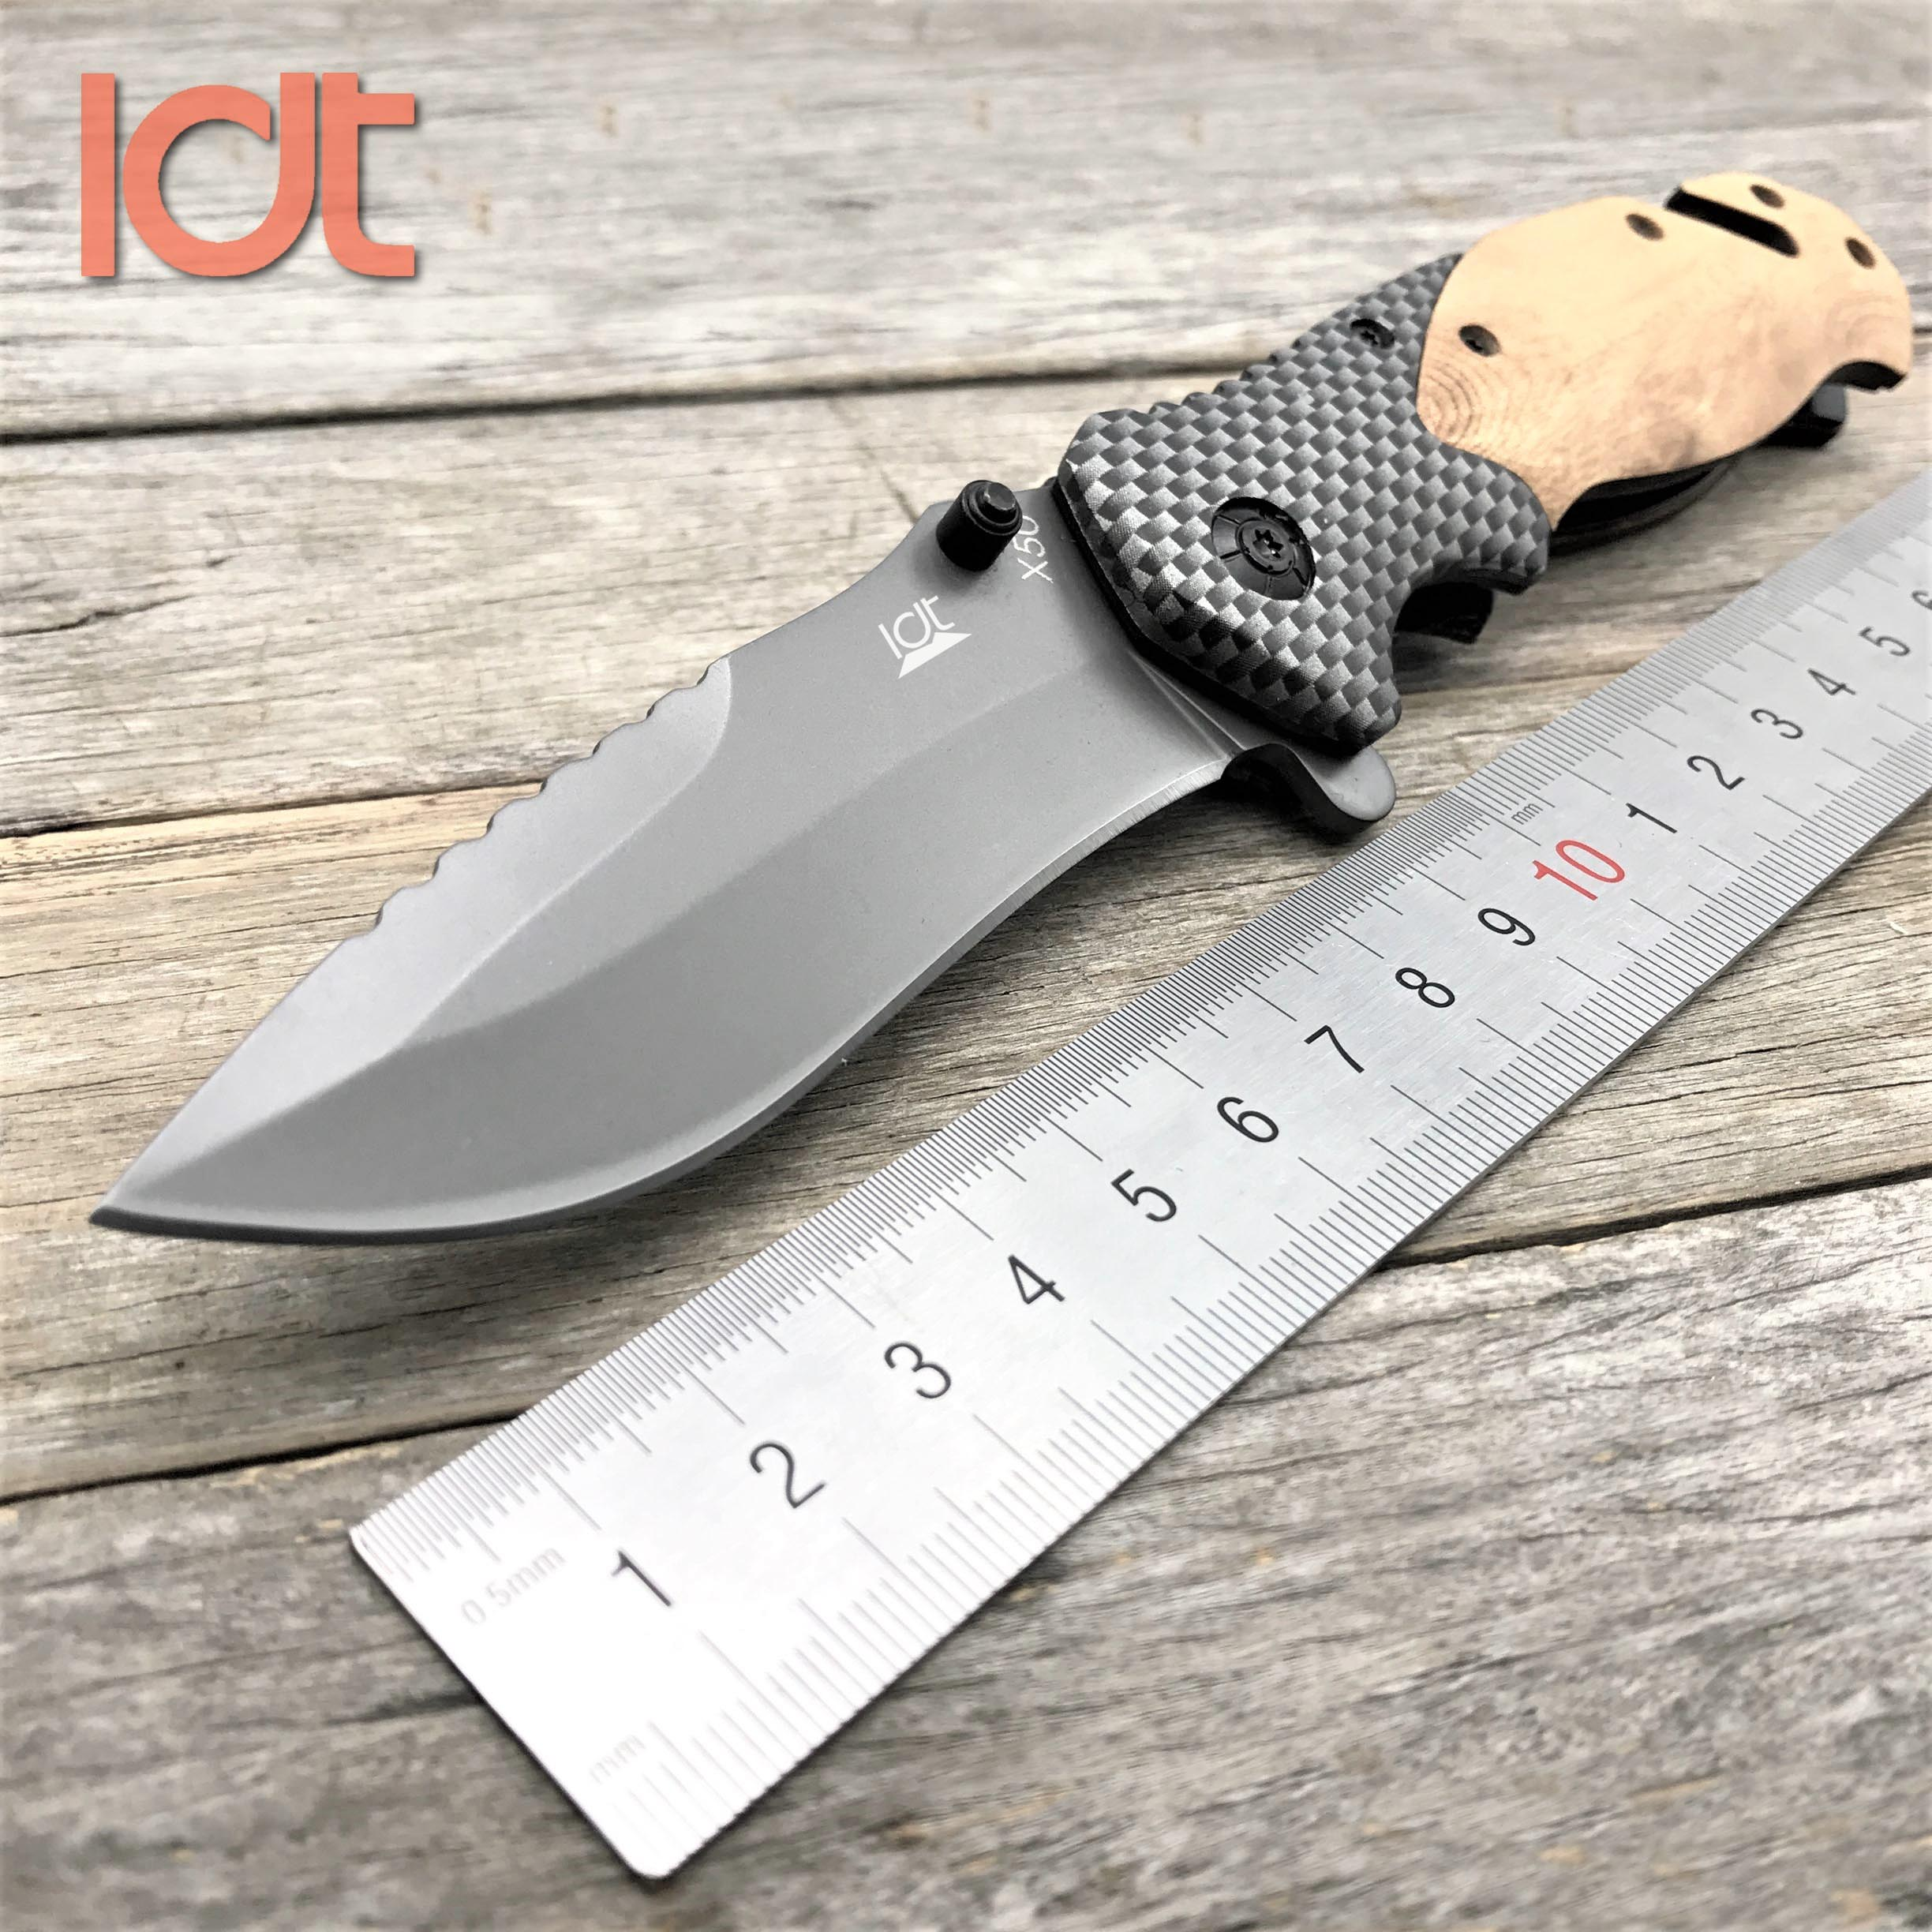 LDT X50 Folding Knife 7Cr18Mov Blade Carbon Fiber Rosewood Handle Military Outdoor Pocket Knife Camping Hunting Knives EDC Tool